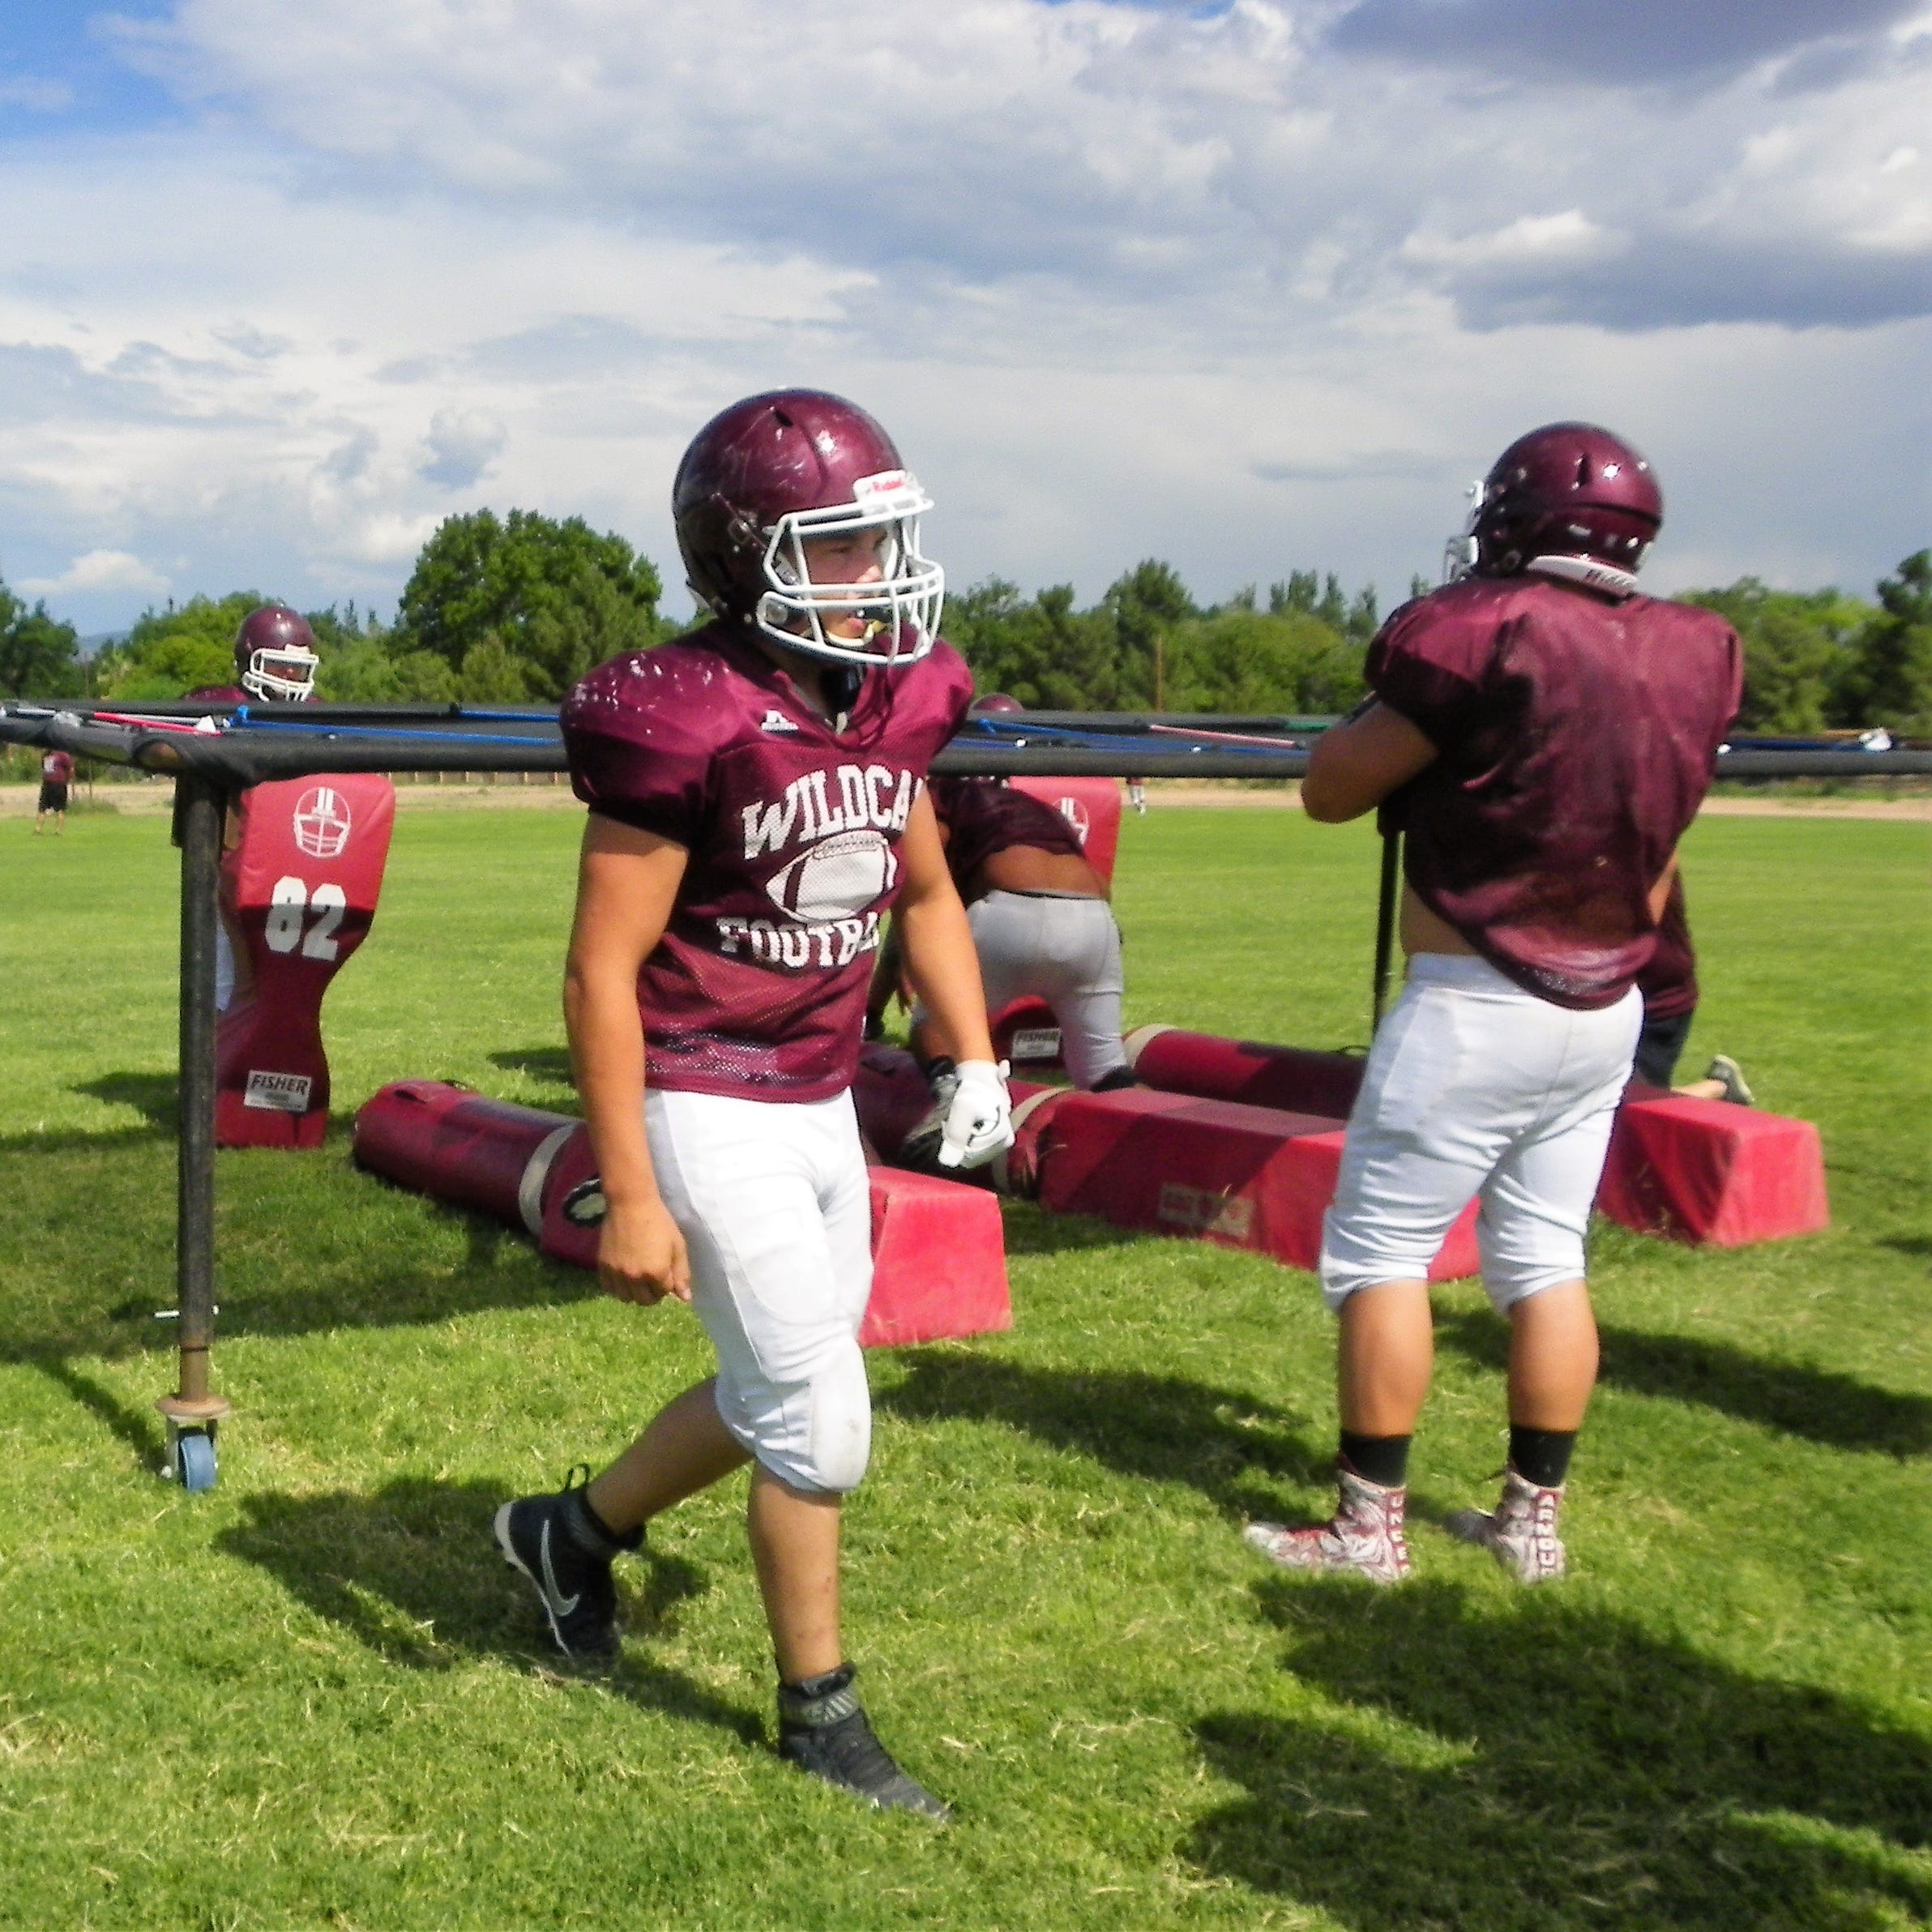 Tularosa Wildcats coach expects good things this year